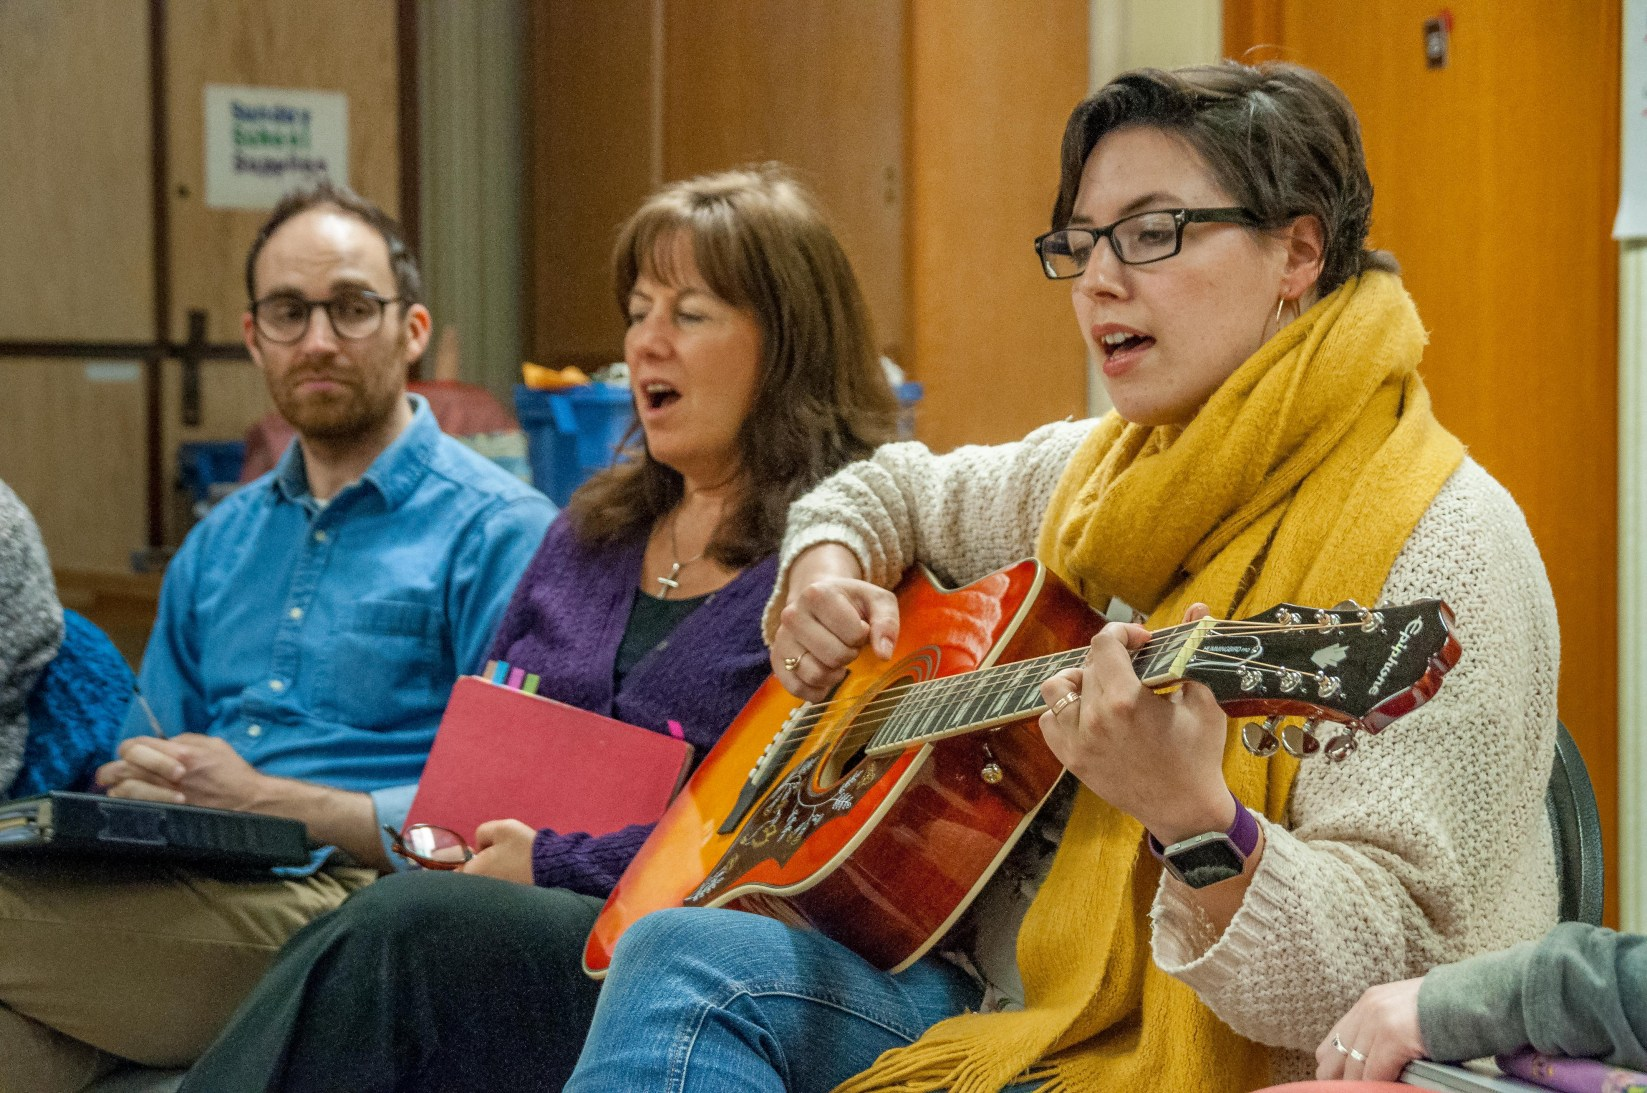 Bri-anne leads the circle in song. With David and Karen.